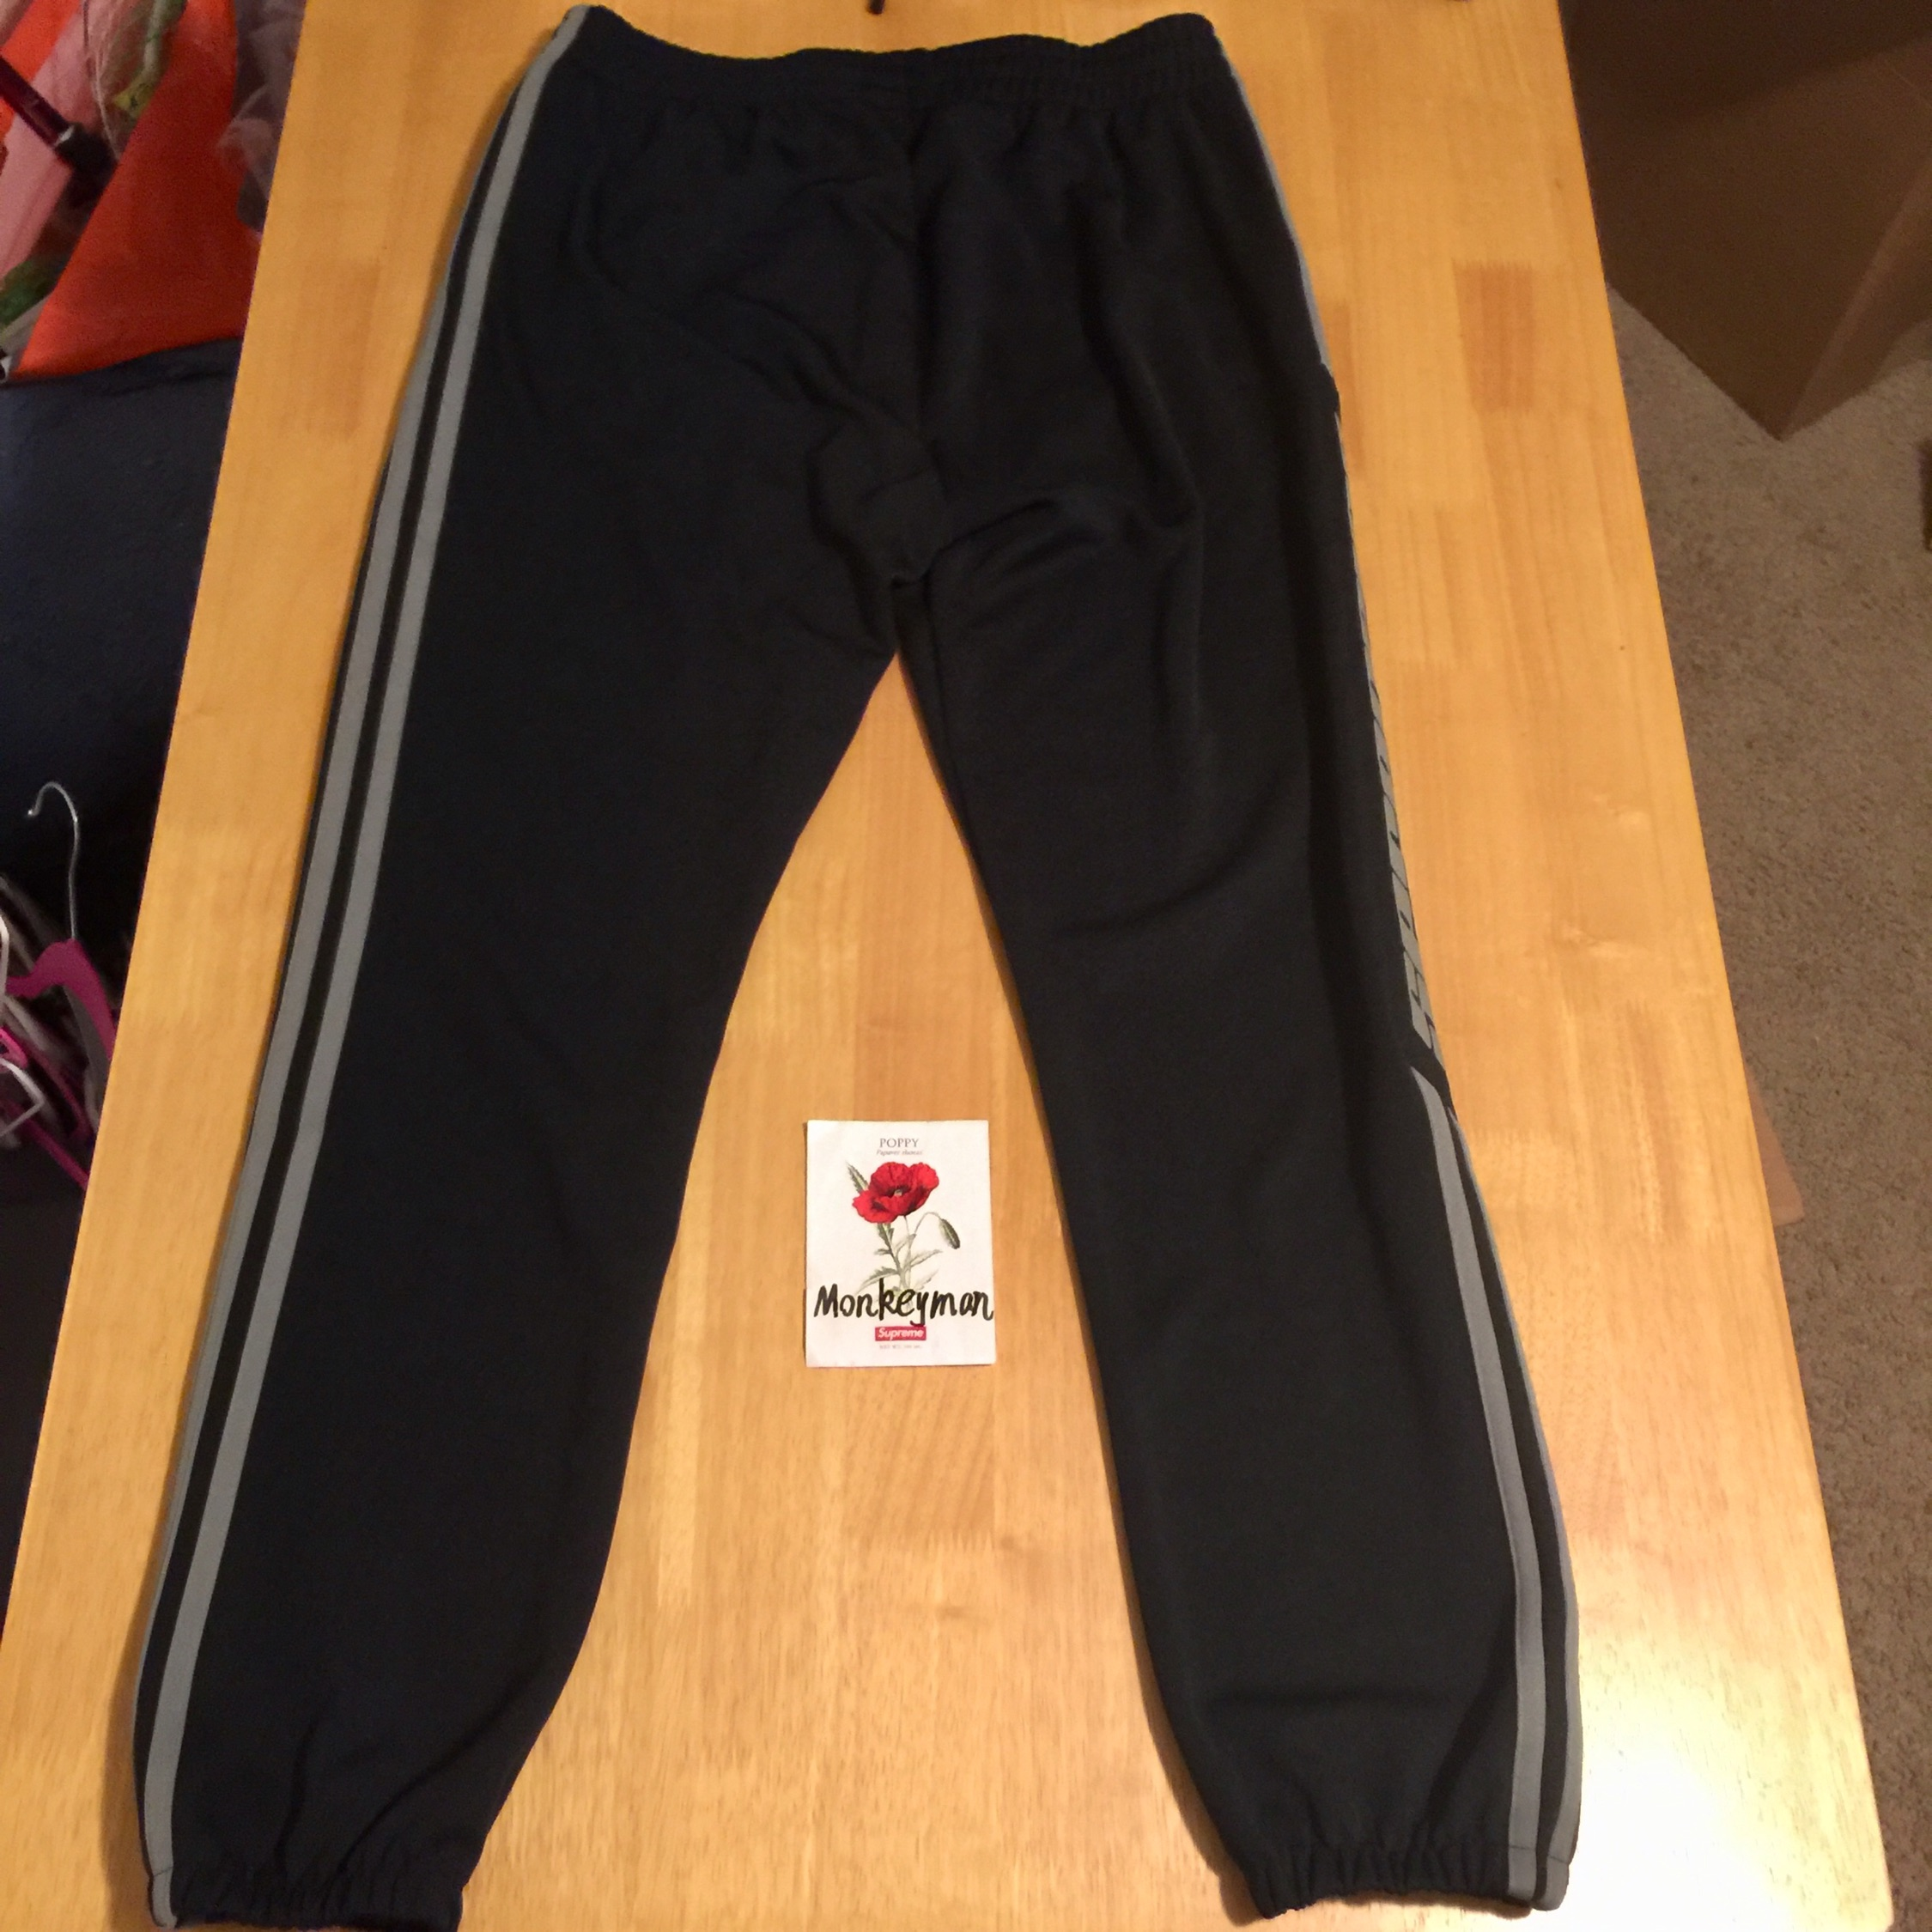 Mosque Discipline Shed  Adidas Yeezy Calabasas Track Pants Black/Grey M